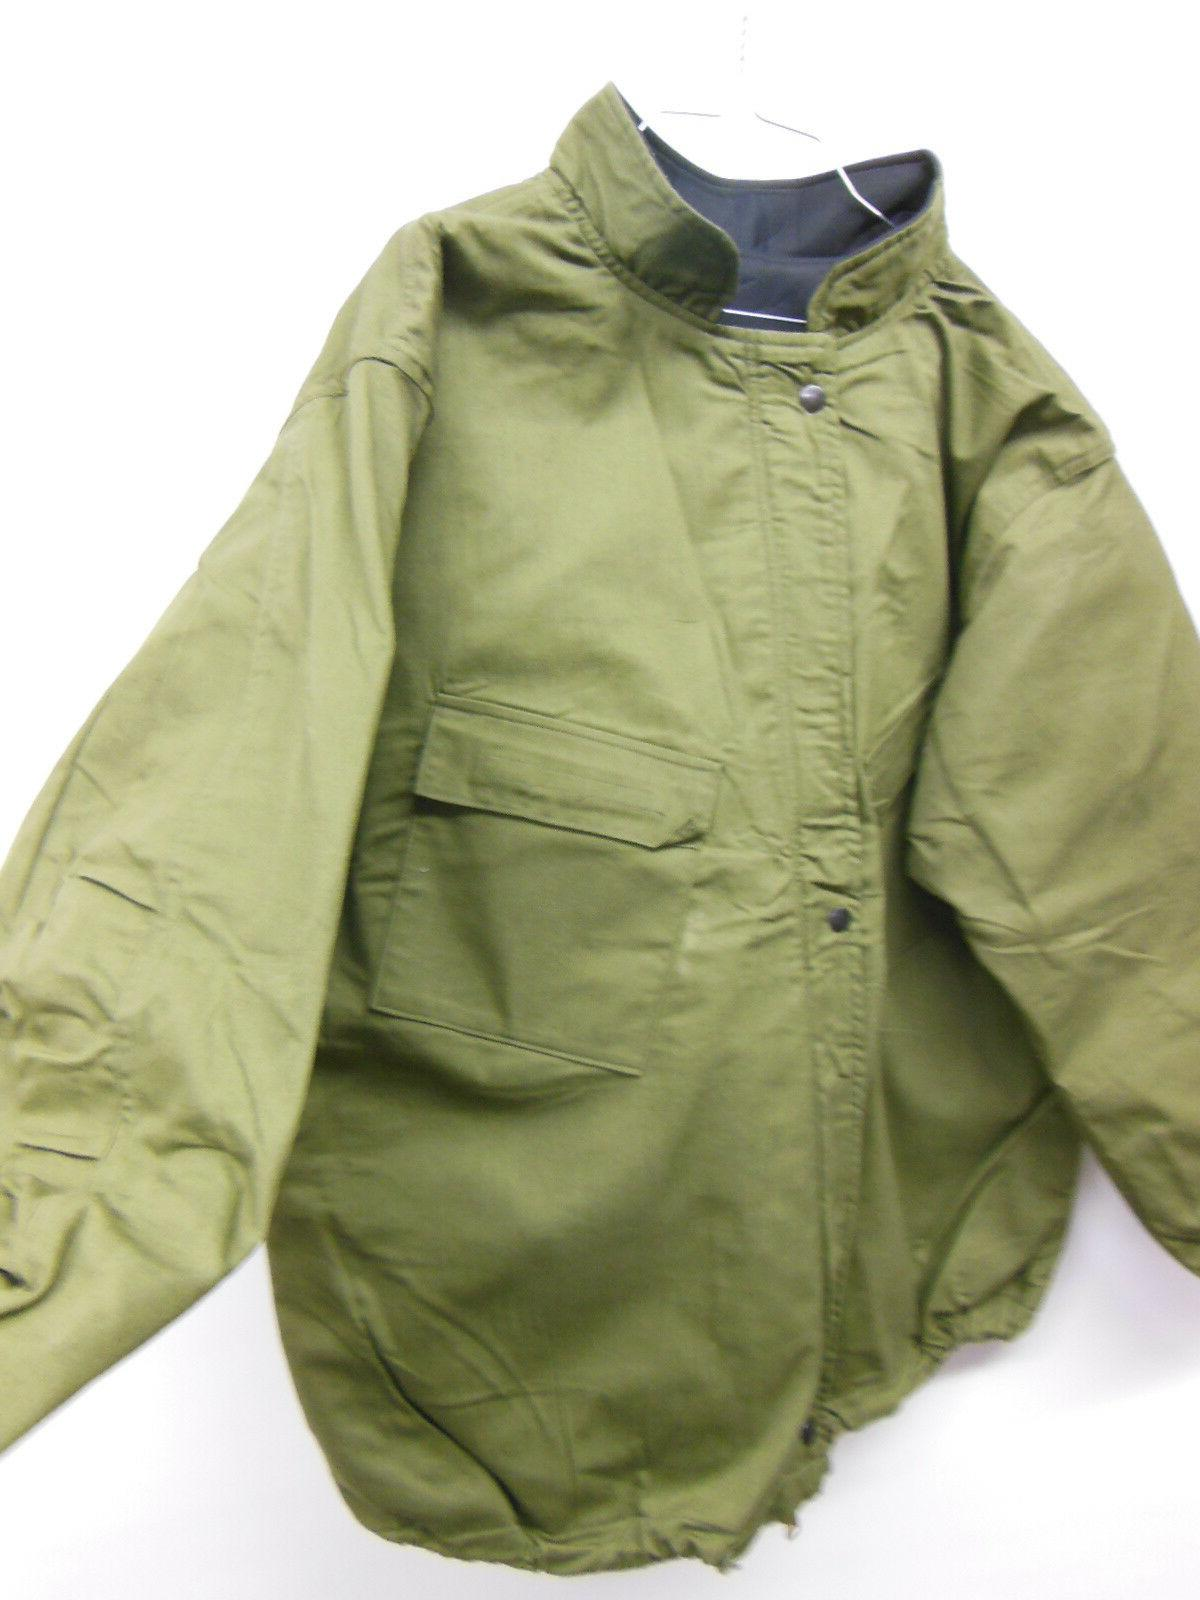 Men's MILITARY Size - Special Insulation DETAILS NOS